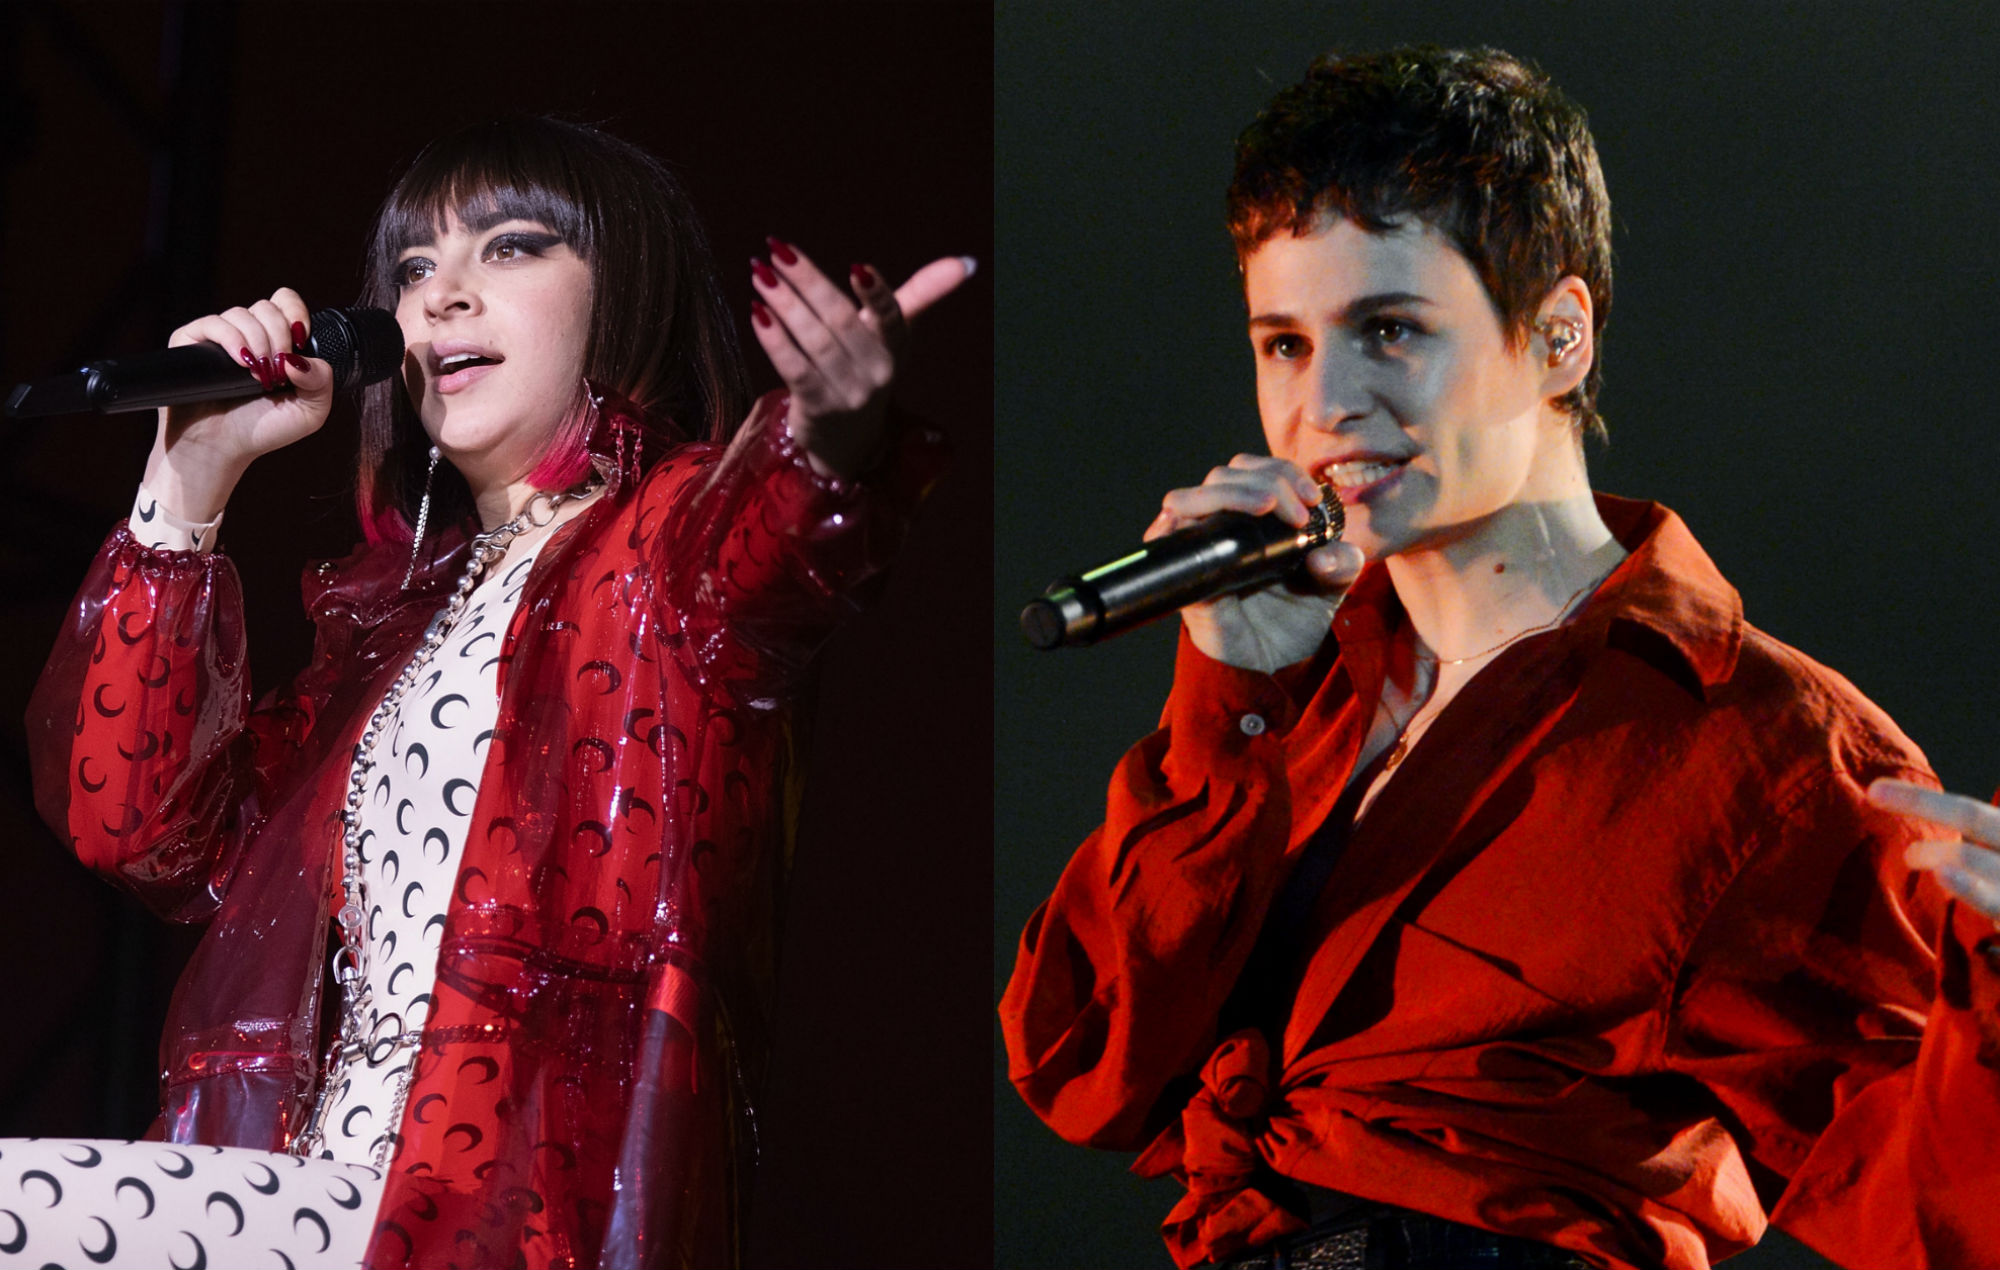 Charli XCX / Christine and the Queens